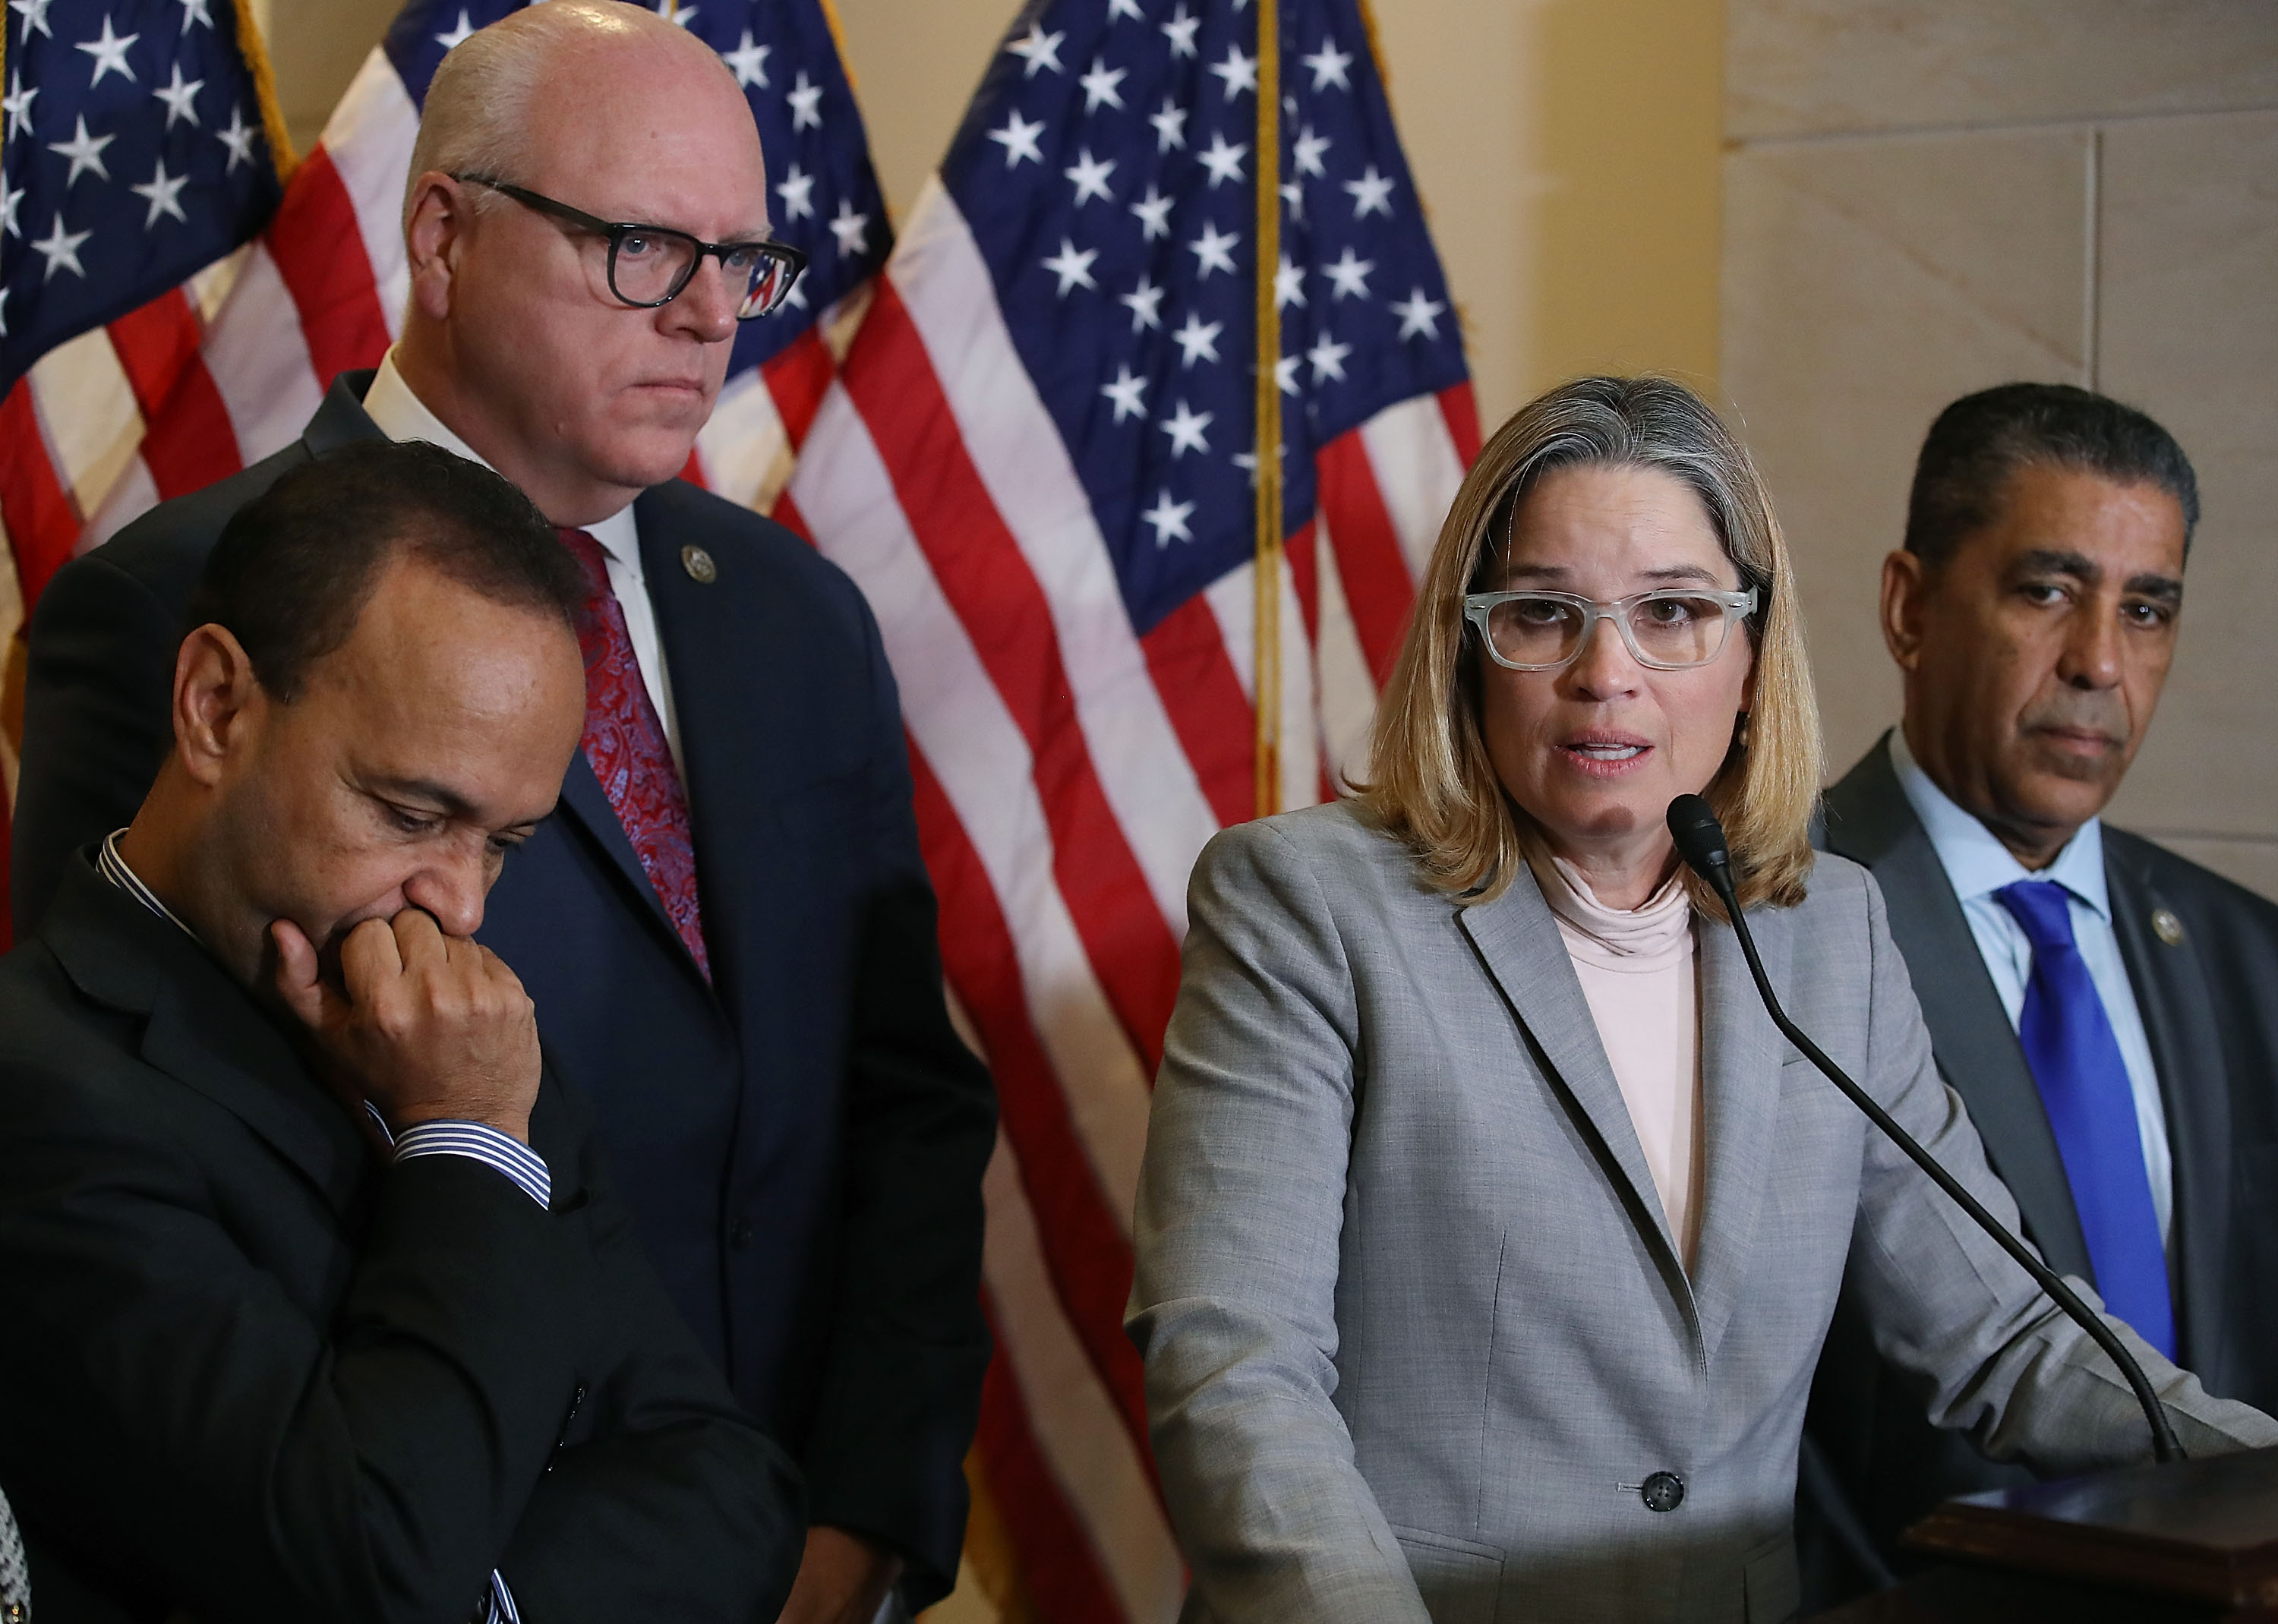 Outspoken San Juan Mayor Carmen Yulín Cruz Considering Run for Puerto Rico Governor